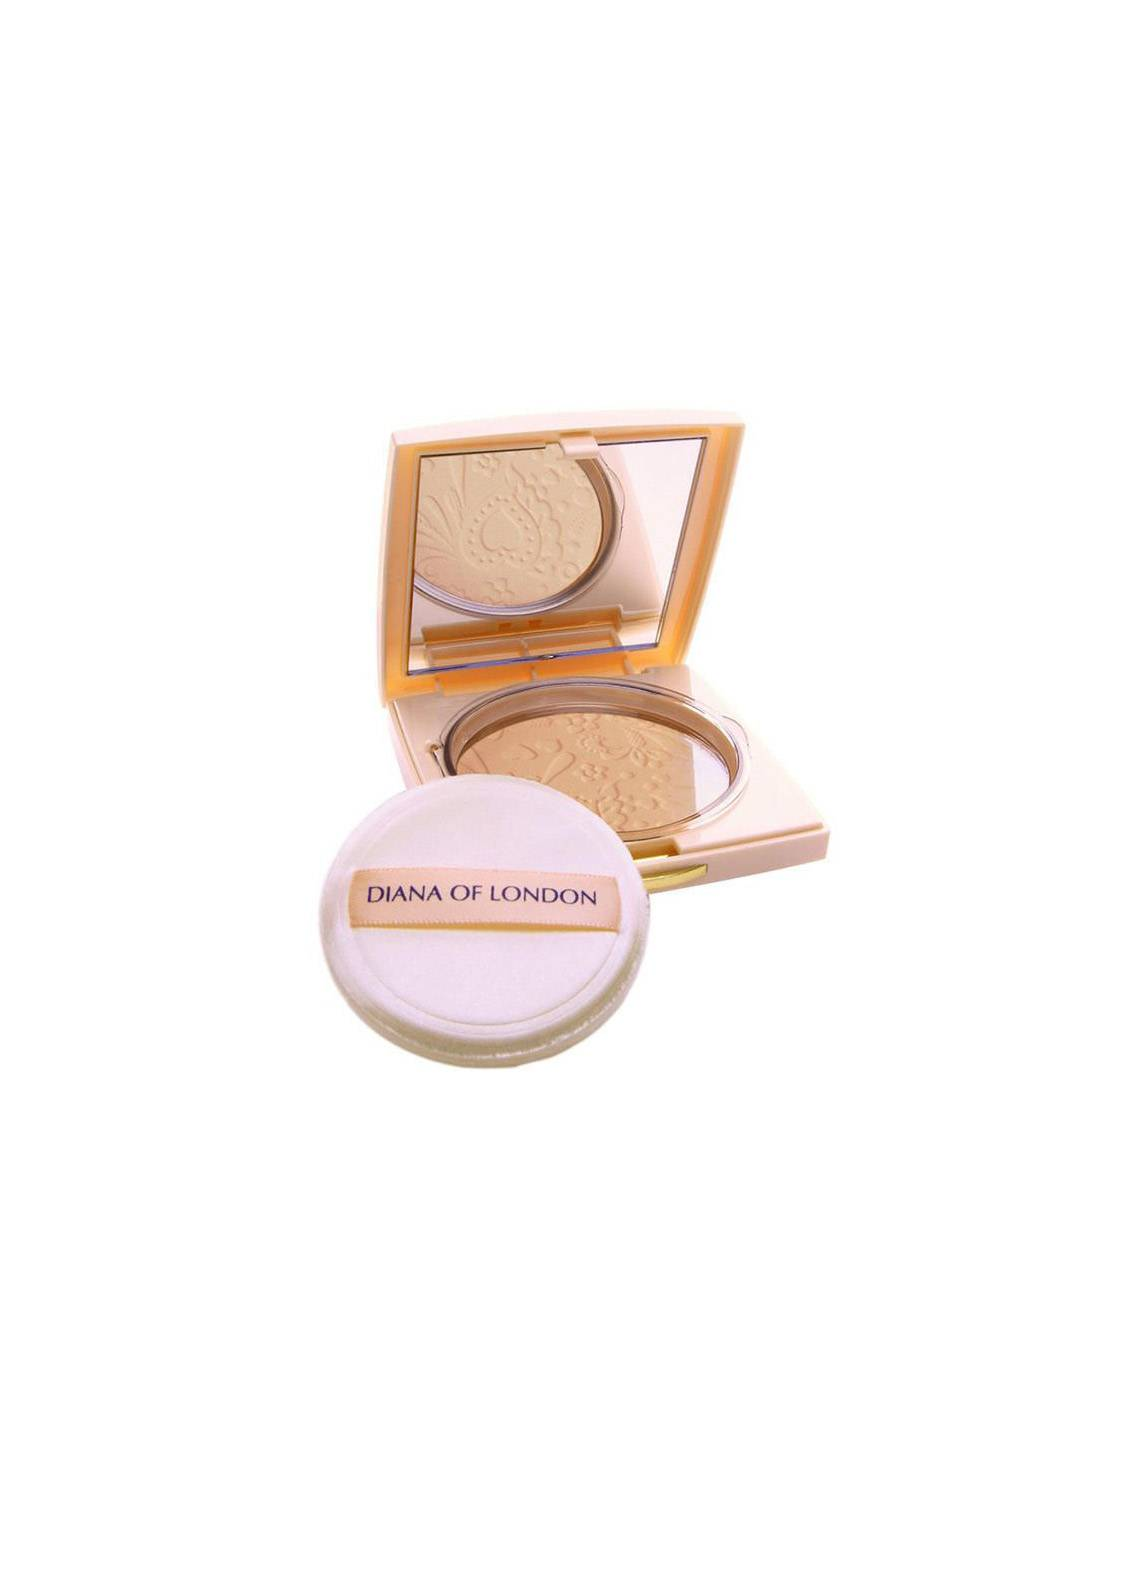 Diana Of London Absolute Compact Powder - Nude Rose-404